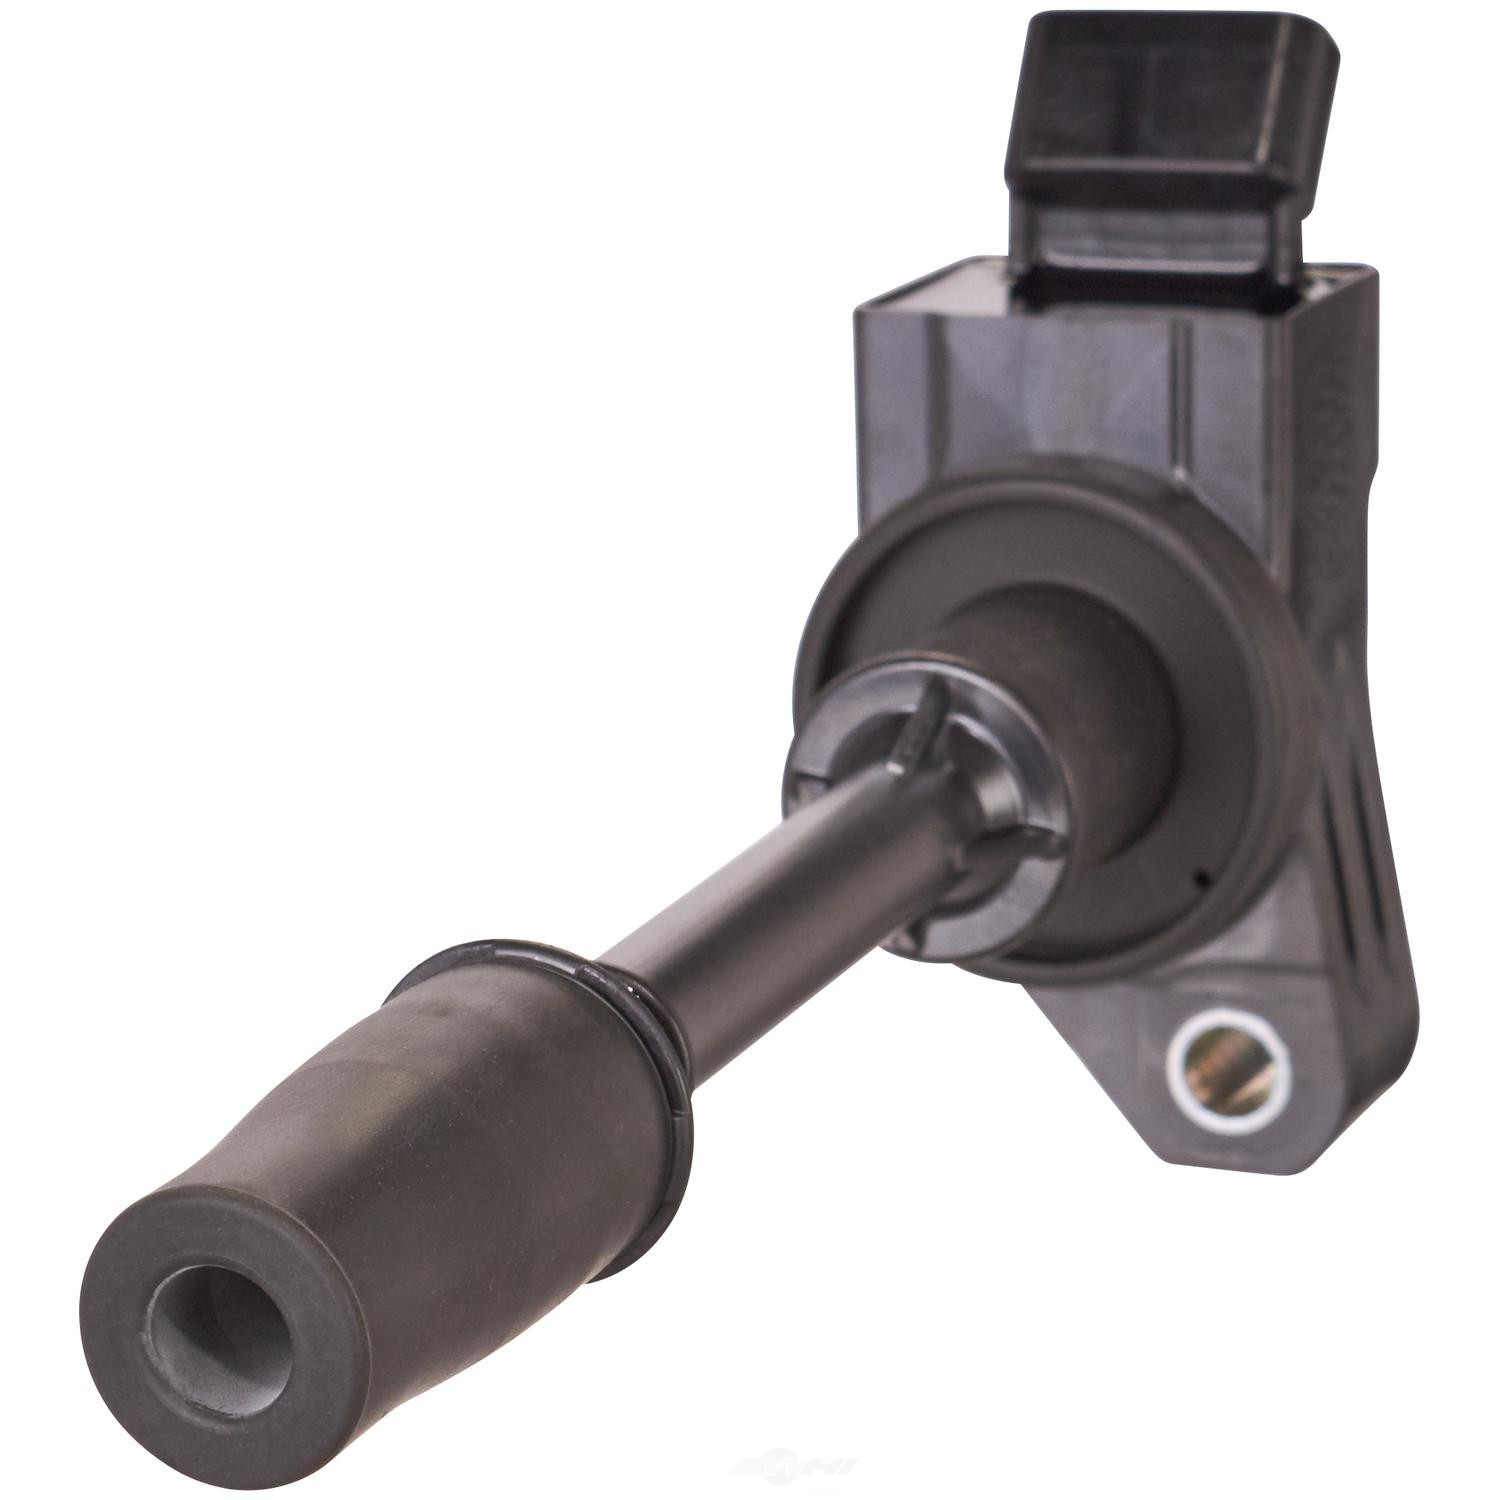 SPECTRA PREMIUM IND, INC. - Ignition Coil - SPC C-966